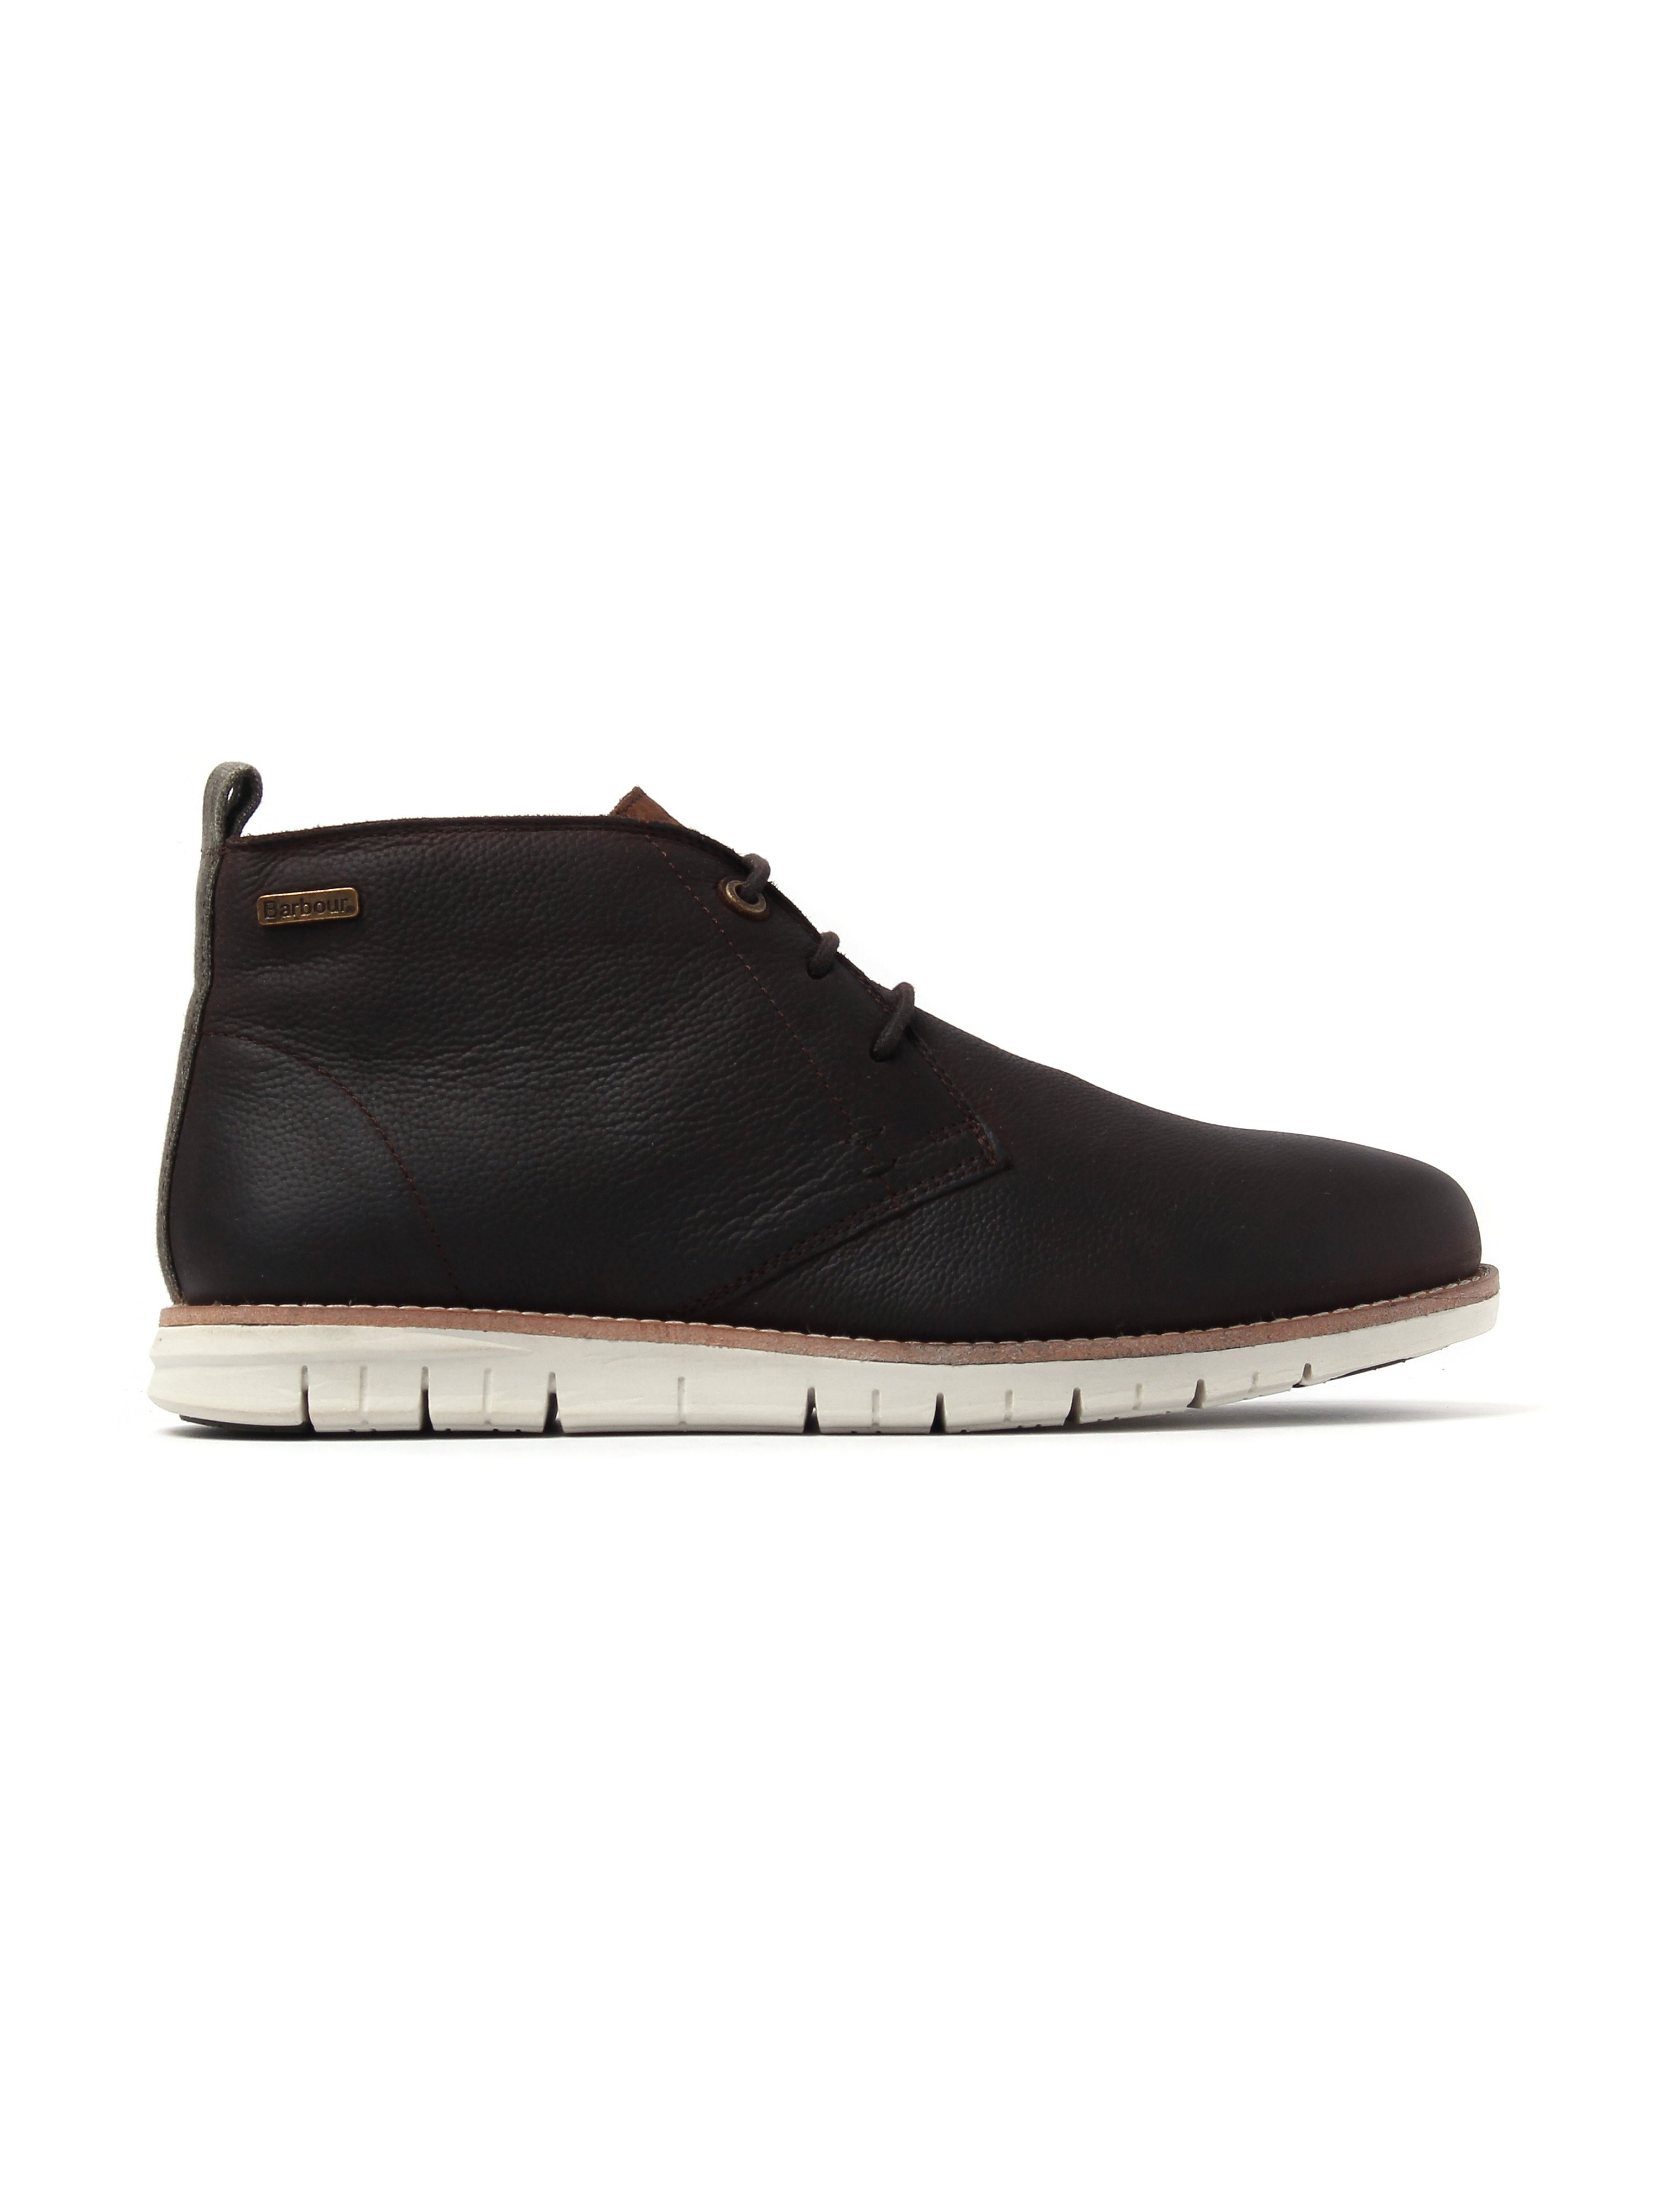 Barbour Men's Burghley Chukka Boots - Truffle Nubuck